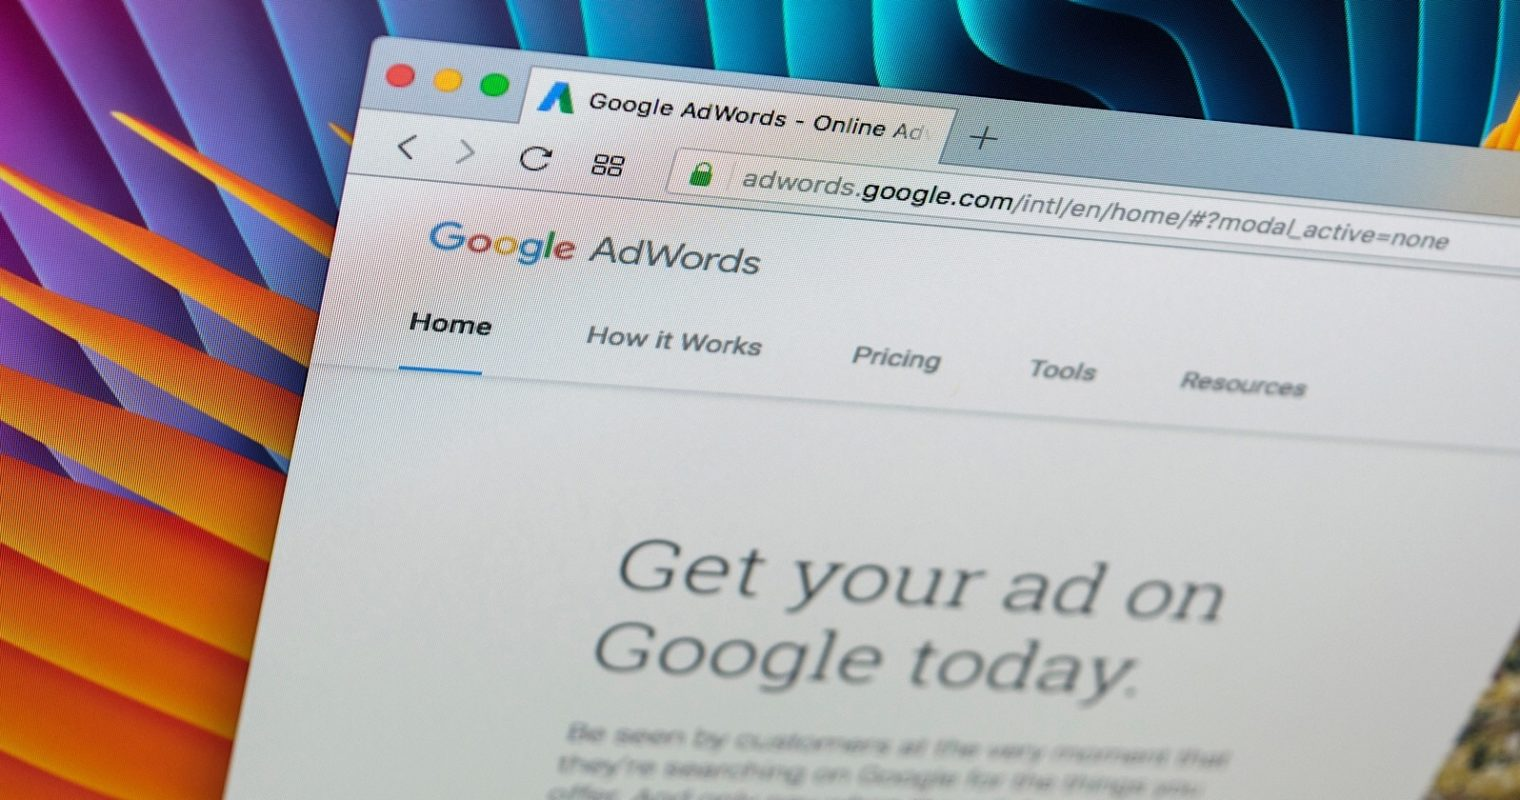 Google AdWords Releases New Tool for Creating Reports